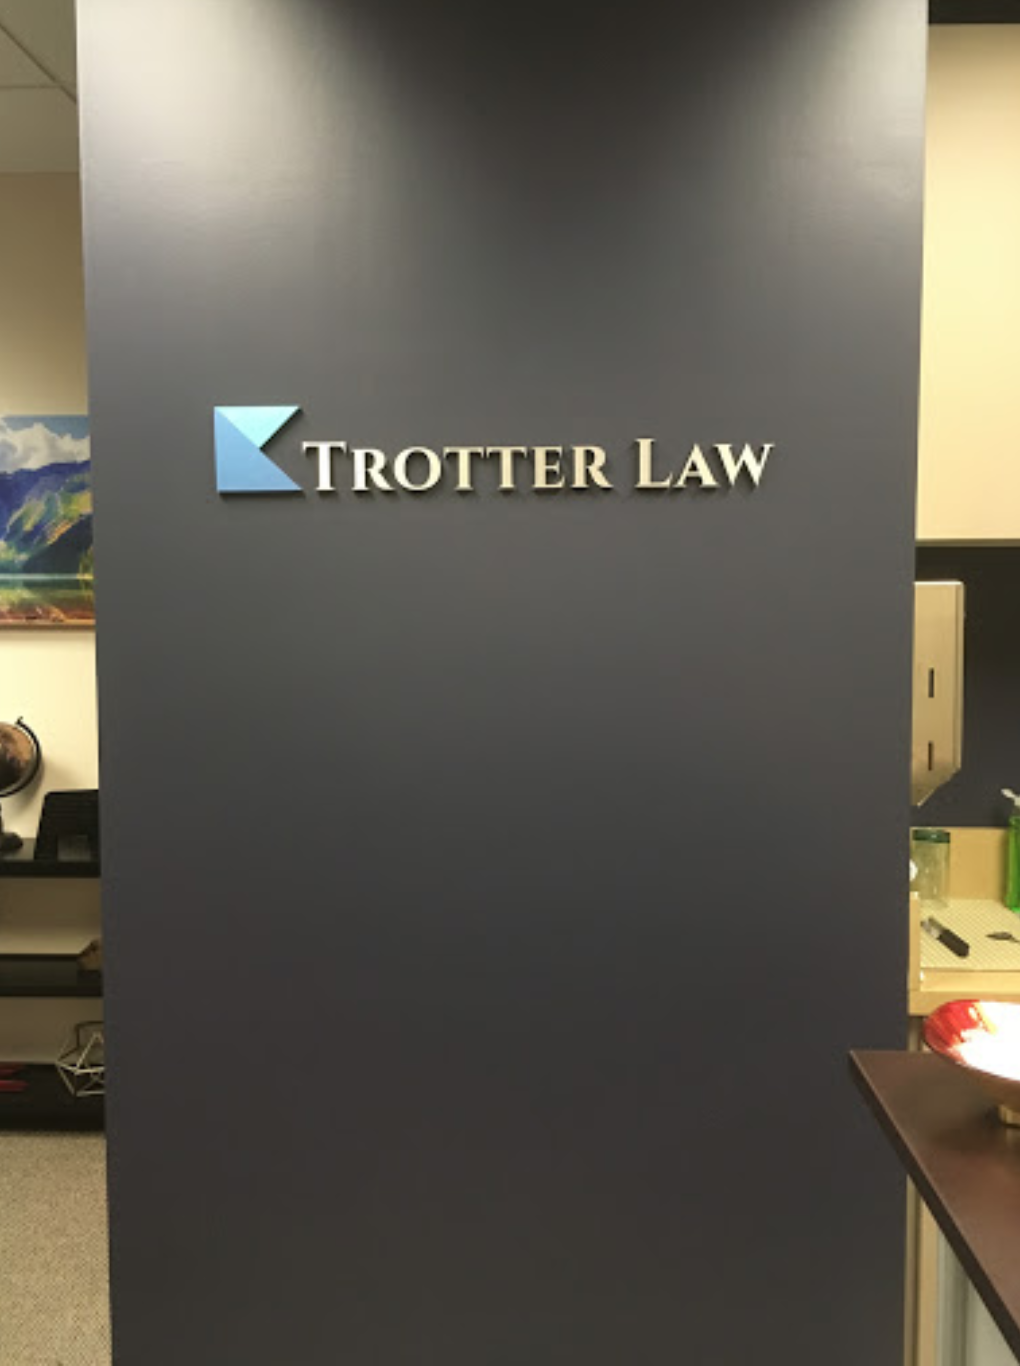 Trotter Law image 1